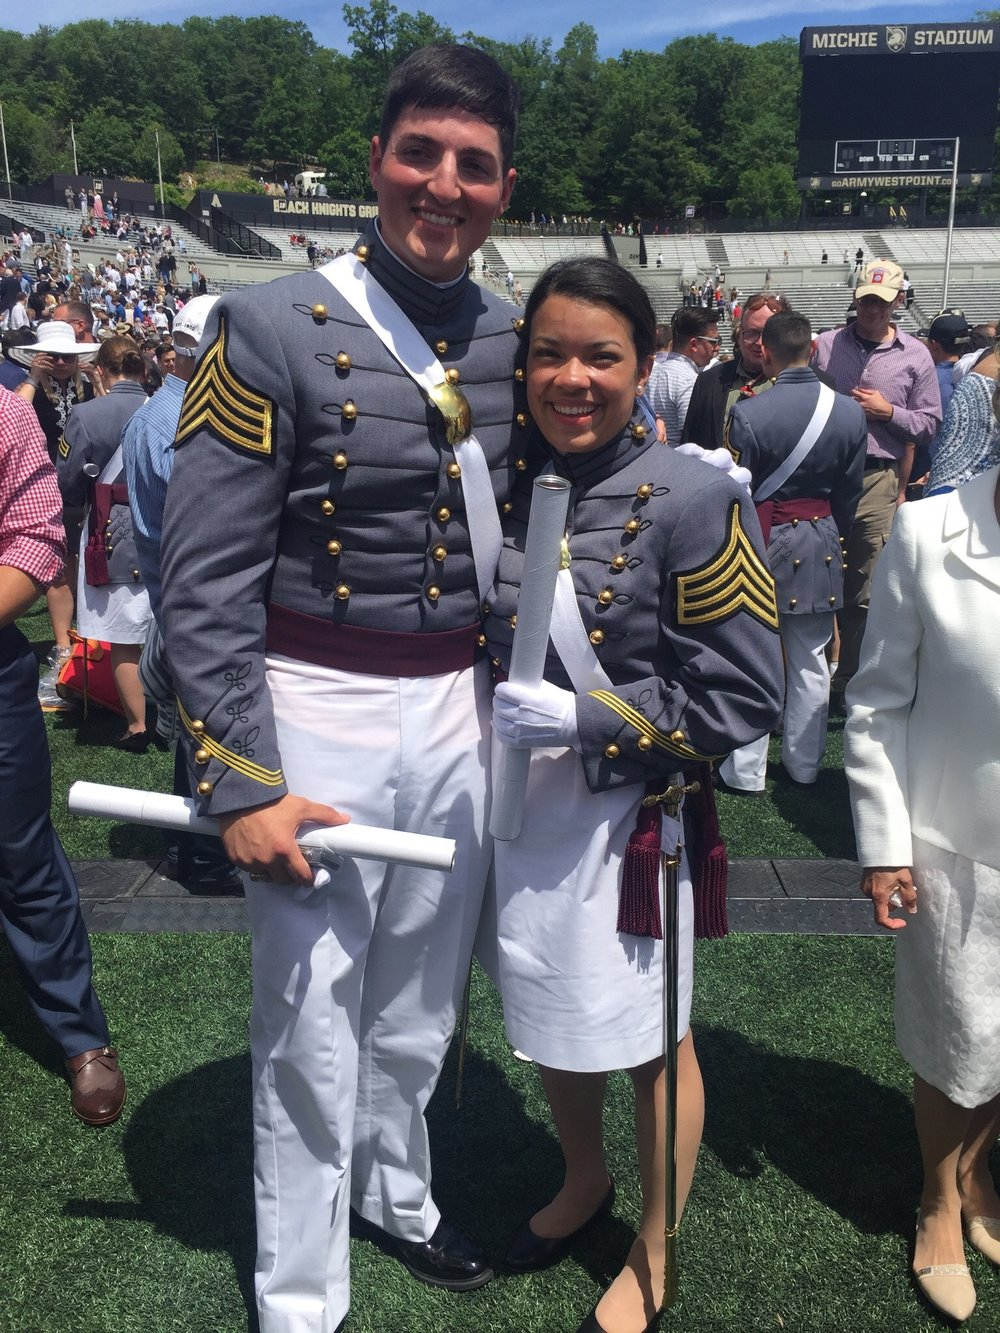 Maria, with boyfriend Ryan at their West Point graduation in 2017.